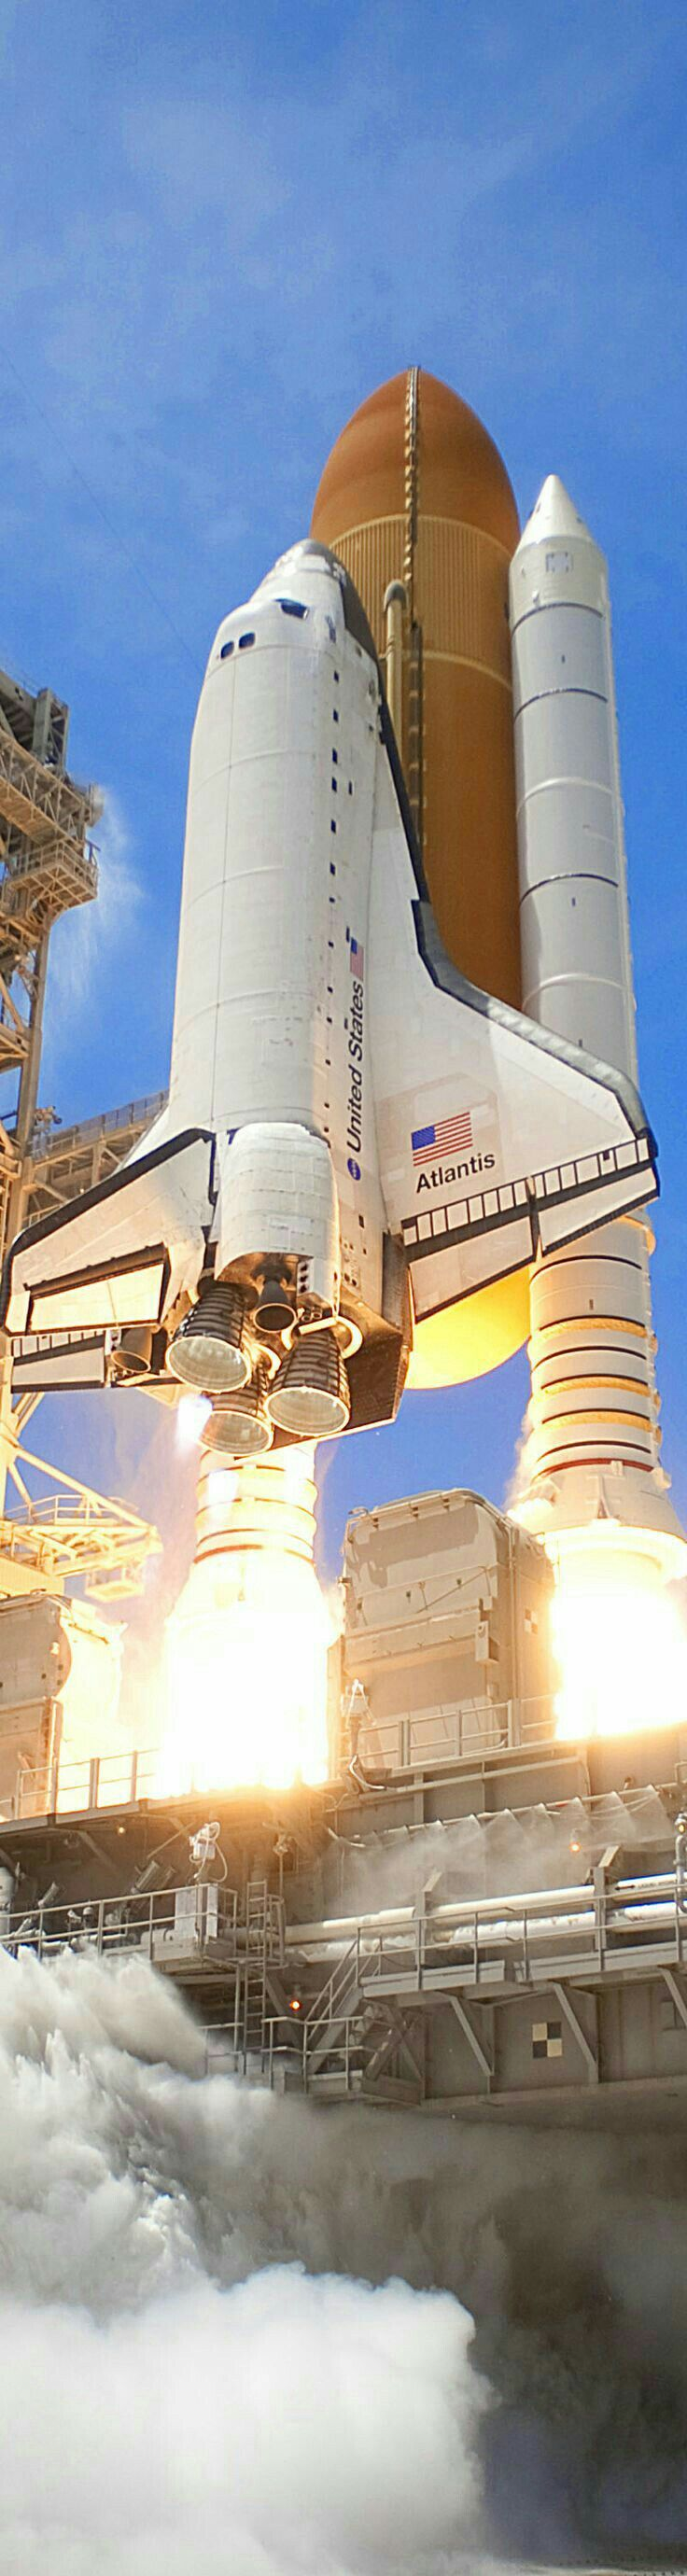 345 best Aircraft design images on Pinterest | Nasa space ...